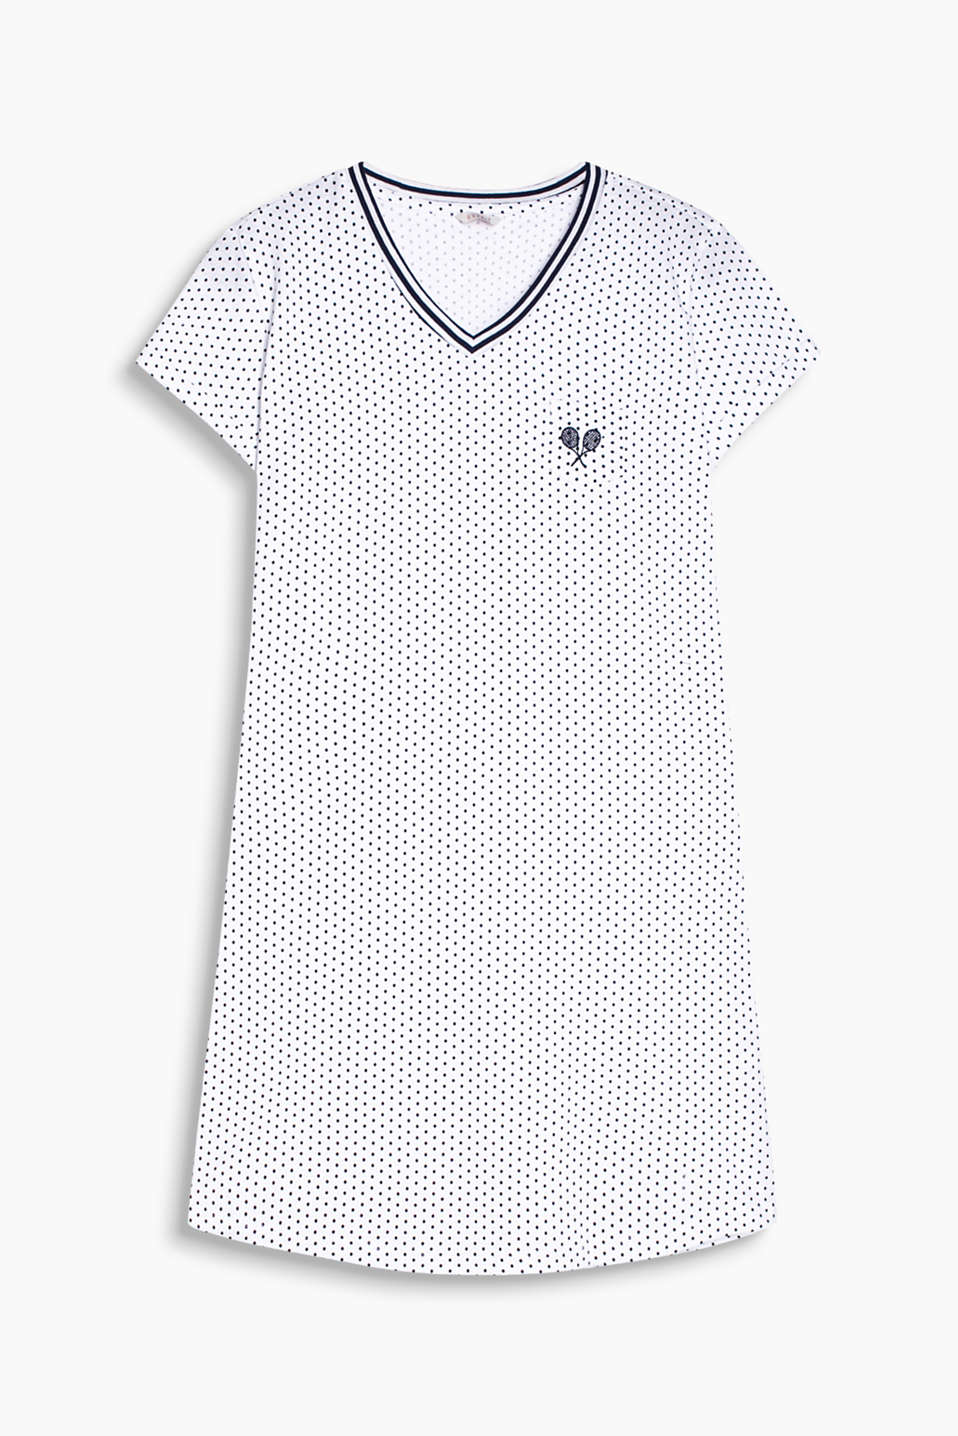 Lightweight piqué nightshirt with a polka dot pattern